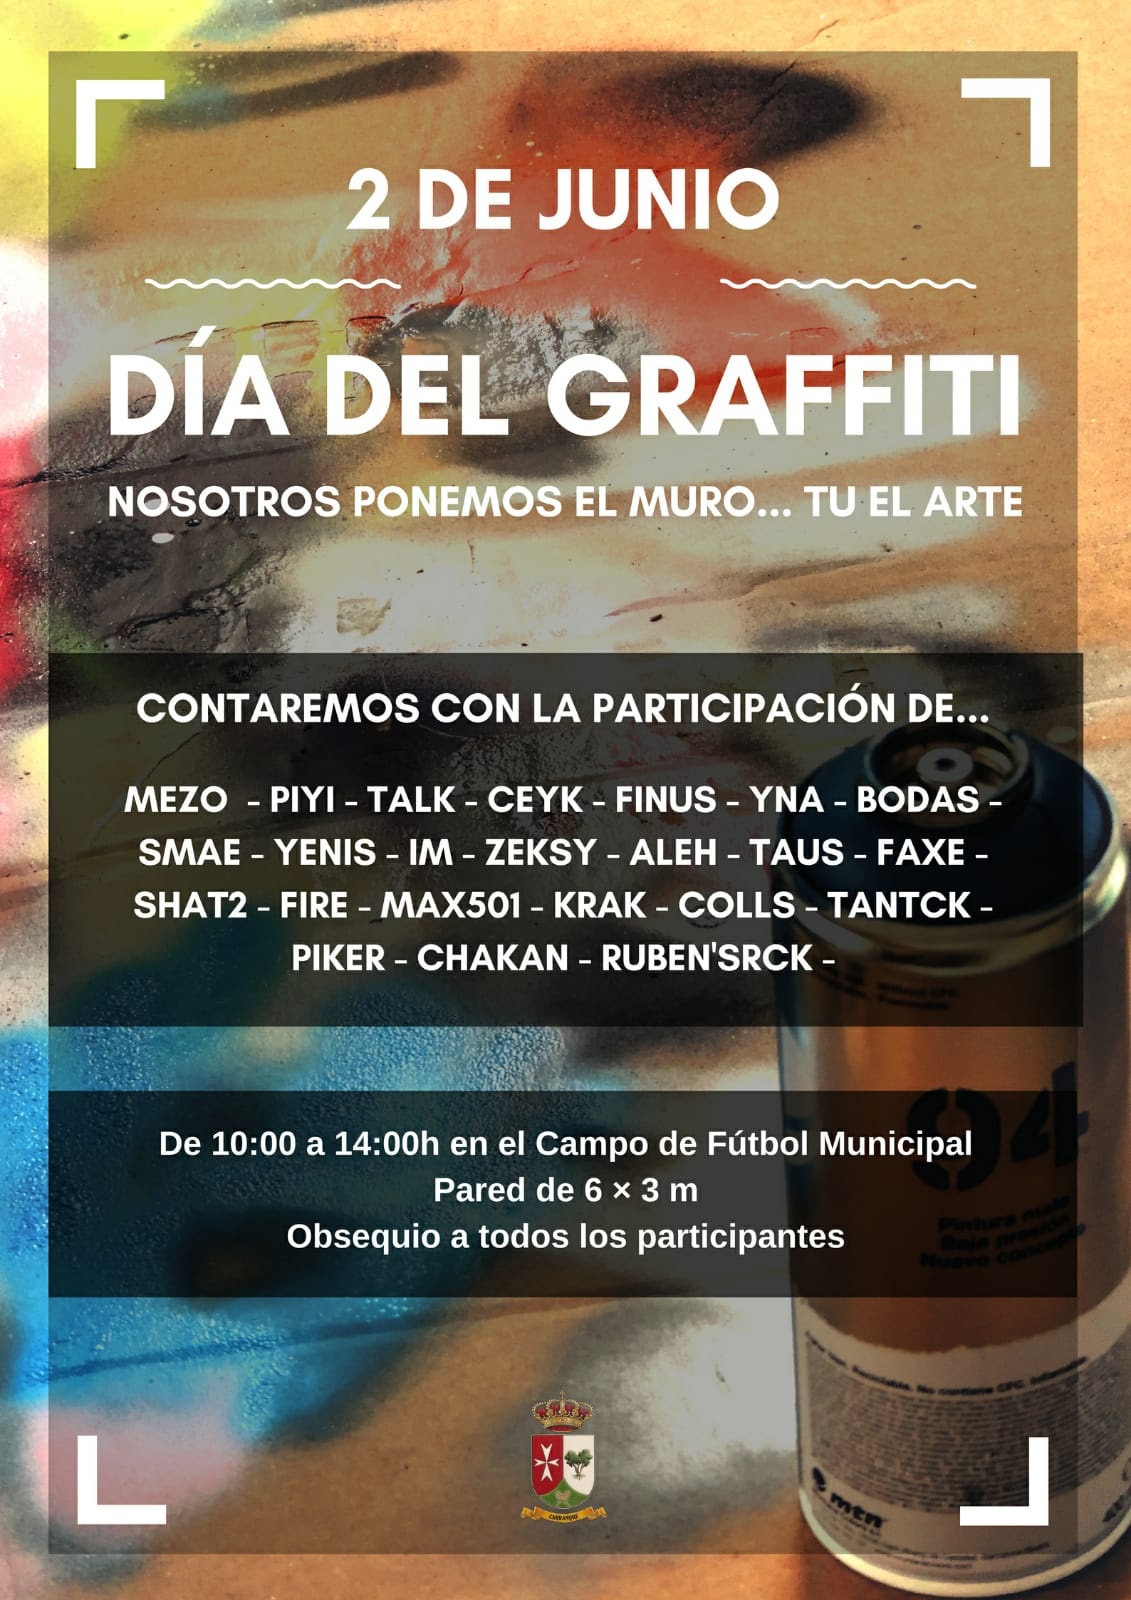 cartel exhibicion graffiti carranque